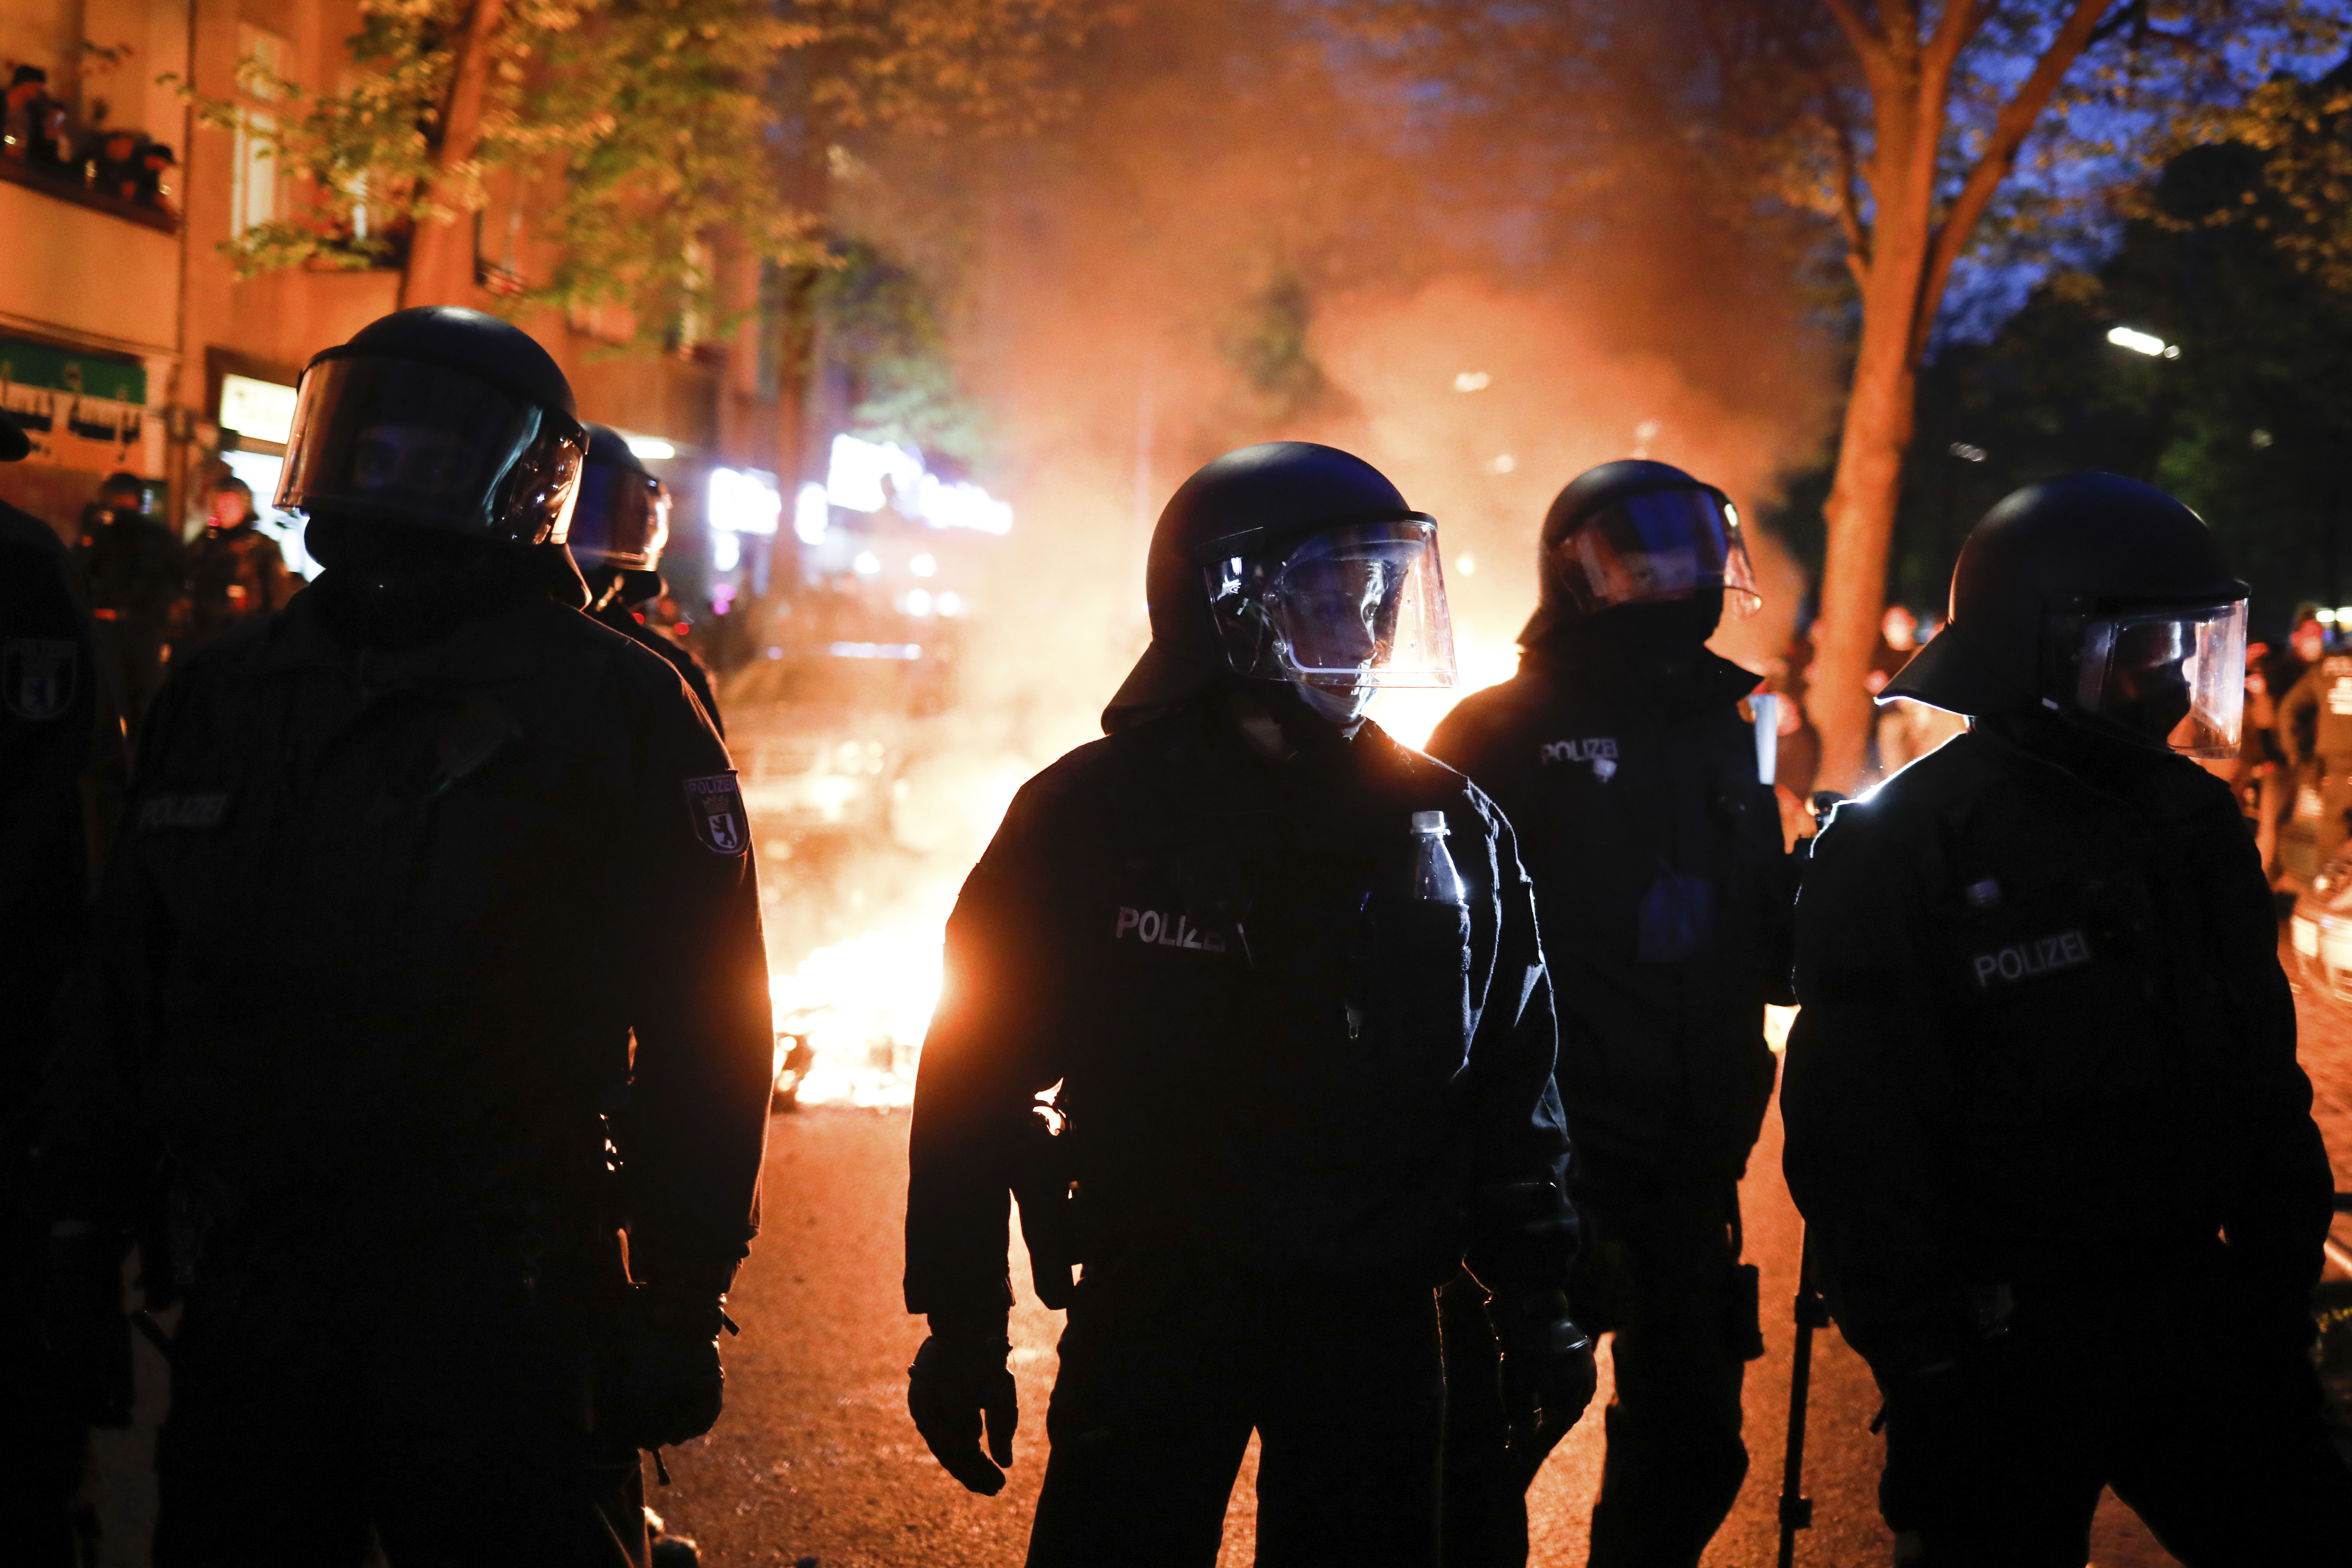 Police officers stand in front of a fire set up by demonstrators during a May Day rally in Berlin, Germany on May 1, 2021.